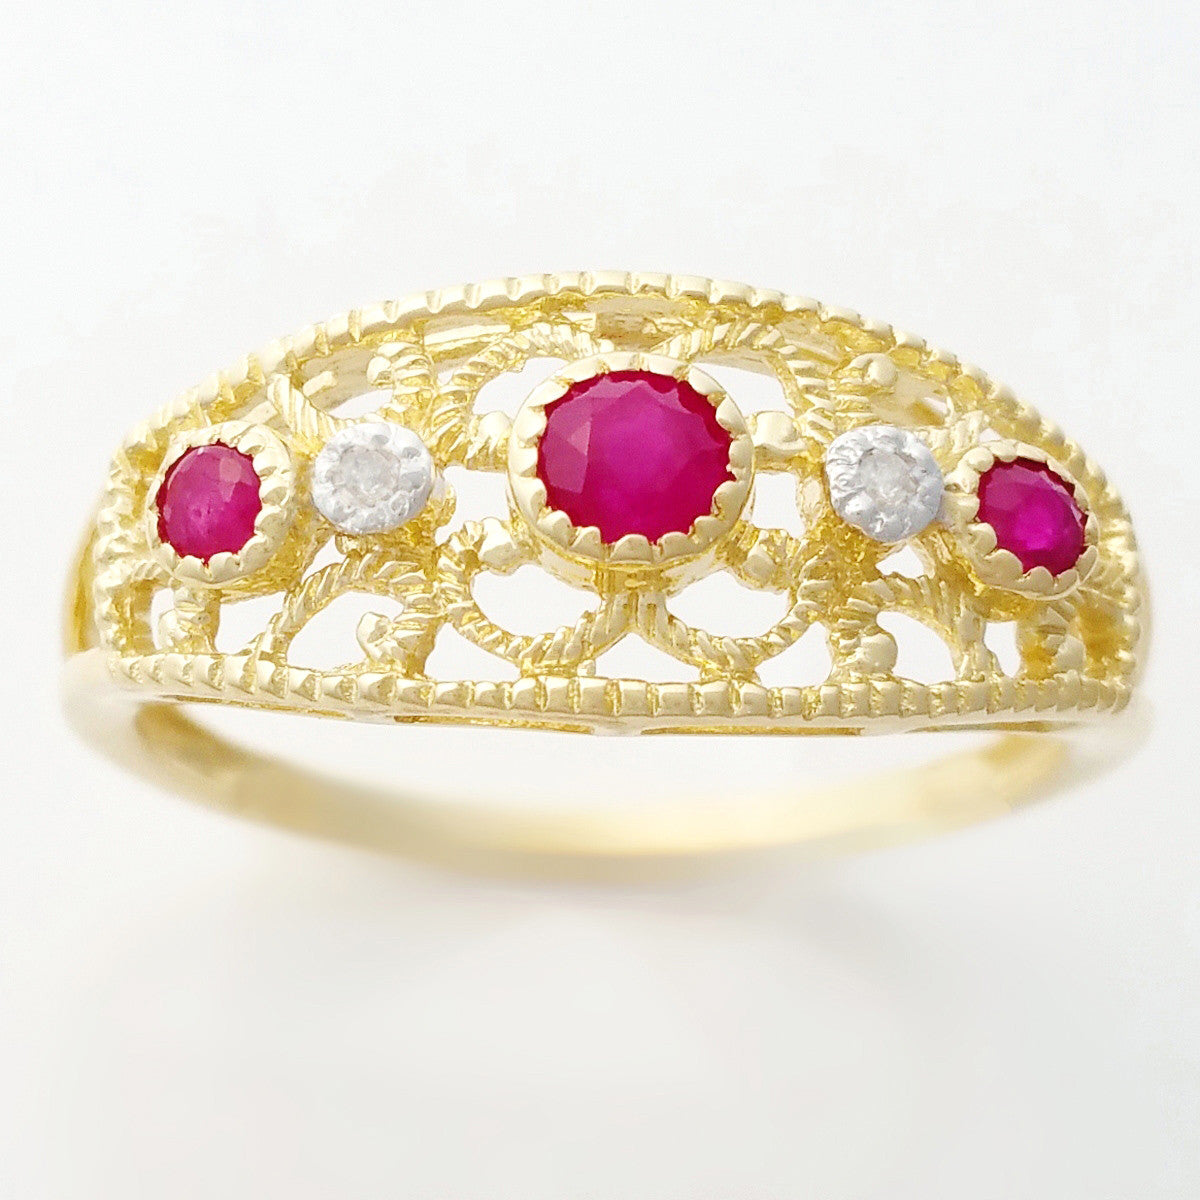 9K SOLID GOLD 0.30CT NATURAL RUBY NAVETTE STYLE RING WITH 2 DIAMONDS.